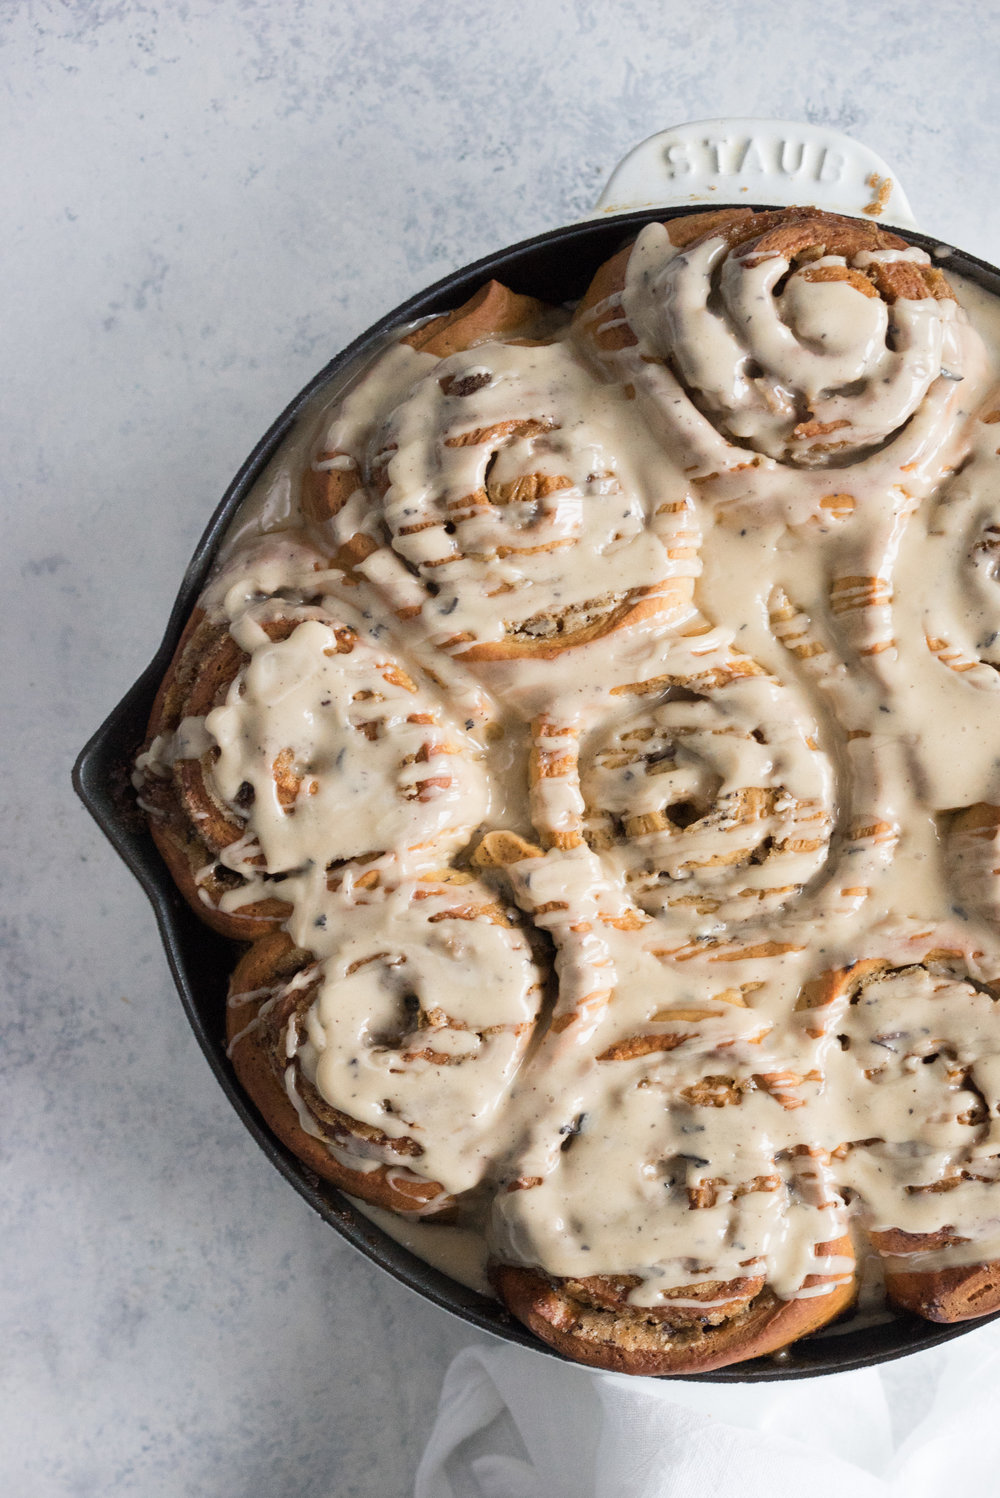 An earl grey infused dough, filled with an earl grey and brown sugar mixture, baked until caramelized, then finished with an earl grey infused glaze. A slightly different take on the classic cinnamon roll.